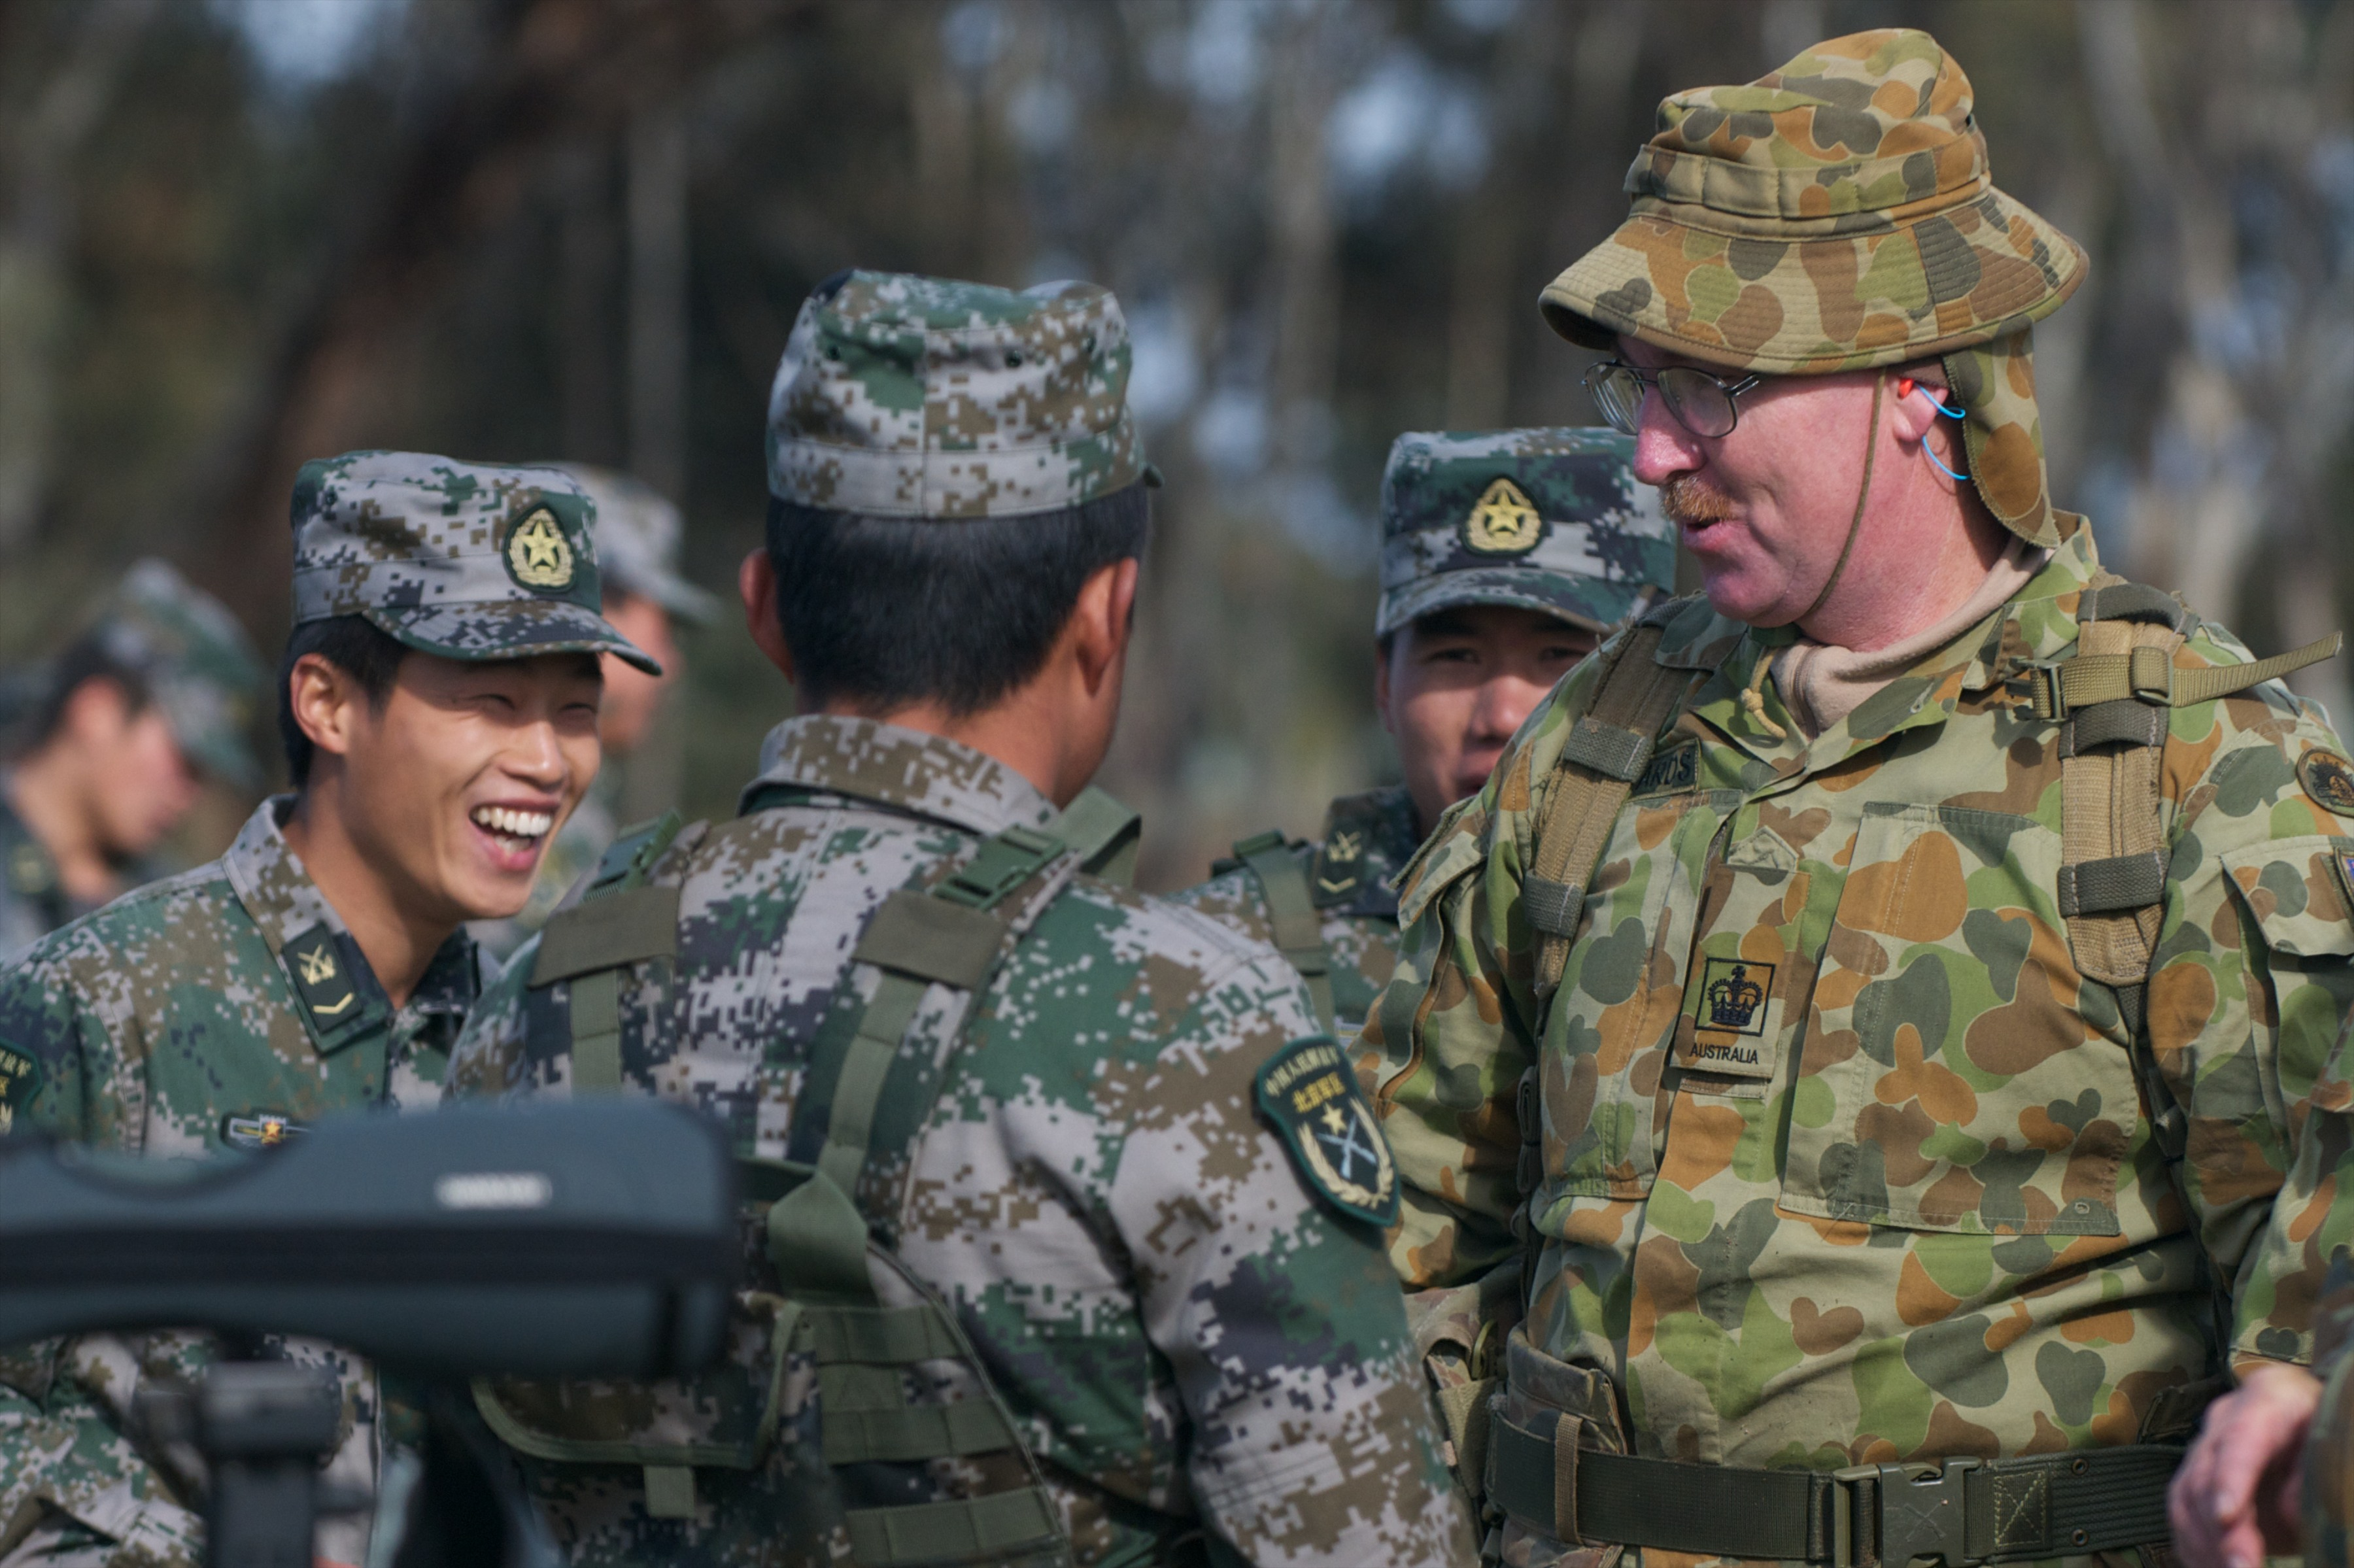 International teams enjoy some time together during Match 62 – International Service Rifle Championship on the last day of competition at this year's Australian Army Skill at Arms Meeting (AASAM).  Warrant Officer Class Two Peter Richards of the Operations Support Squadron, 6th Engineer Support Regiment, jokes with shooting team members from China.